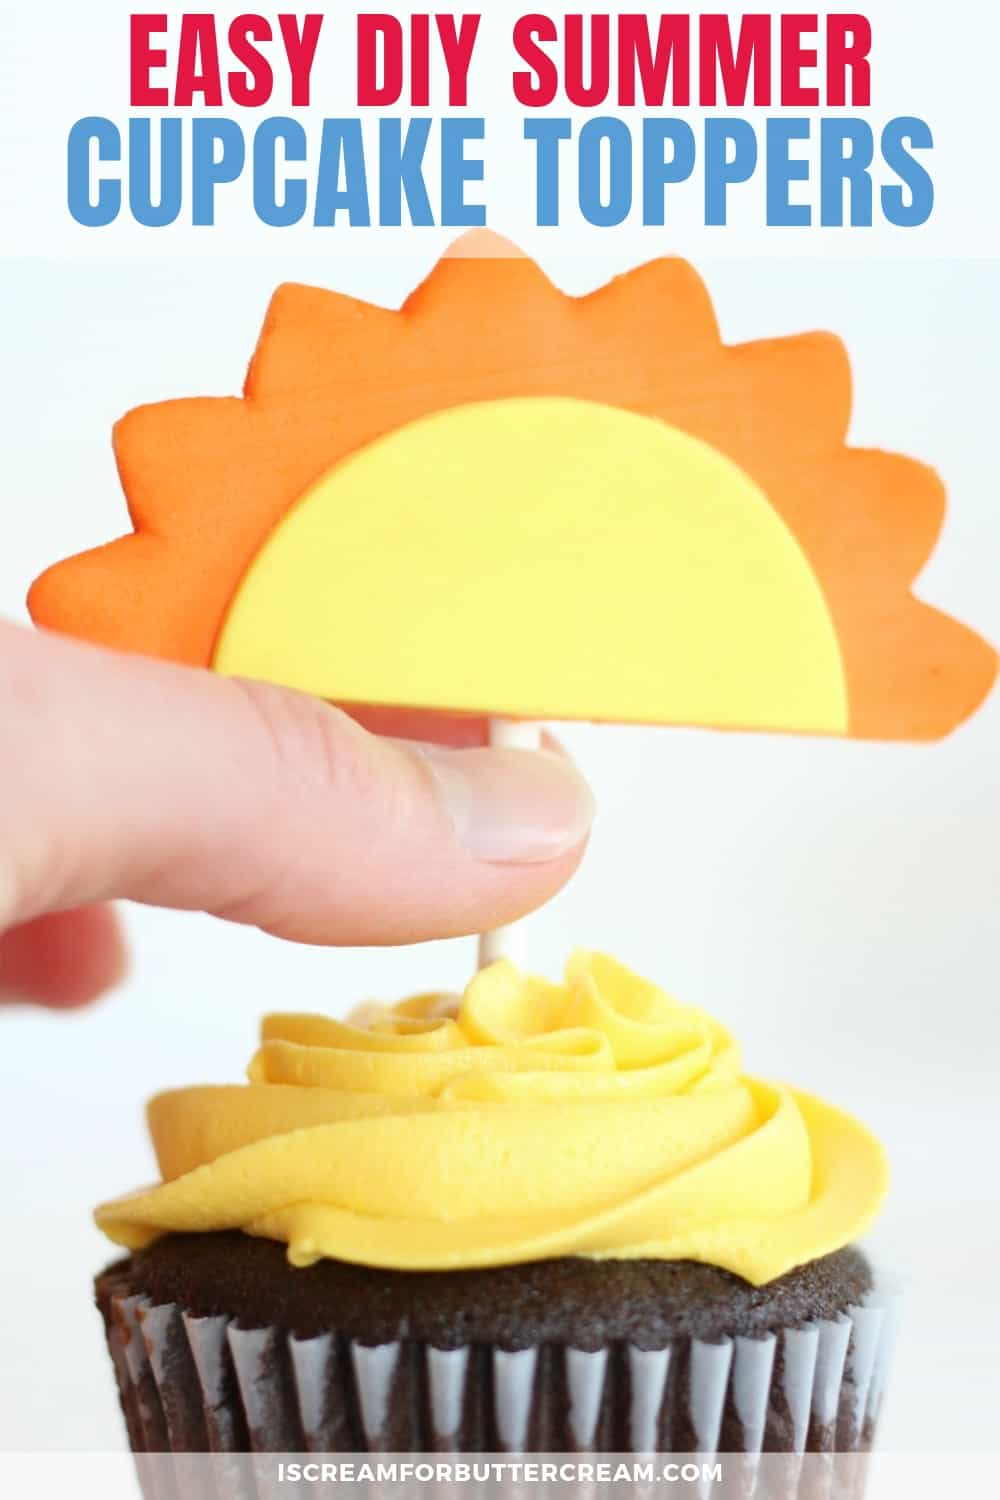 DIY Summer Cupcake Toppers new pin graphic 1